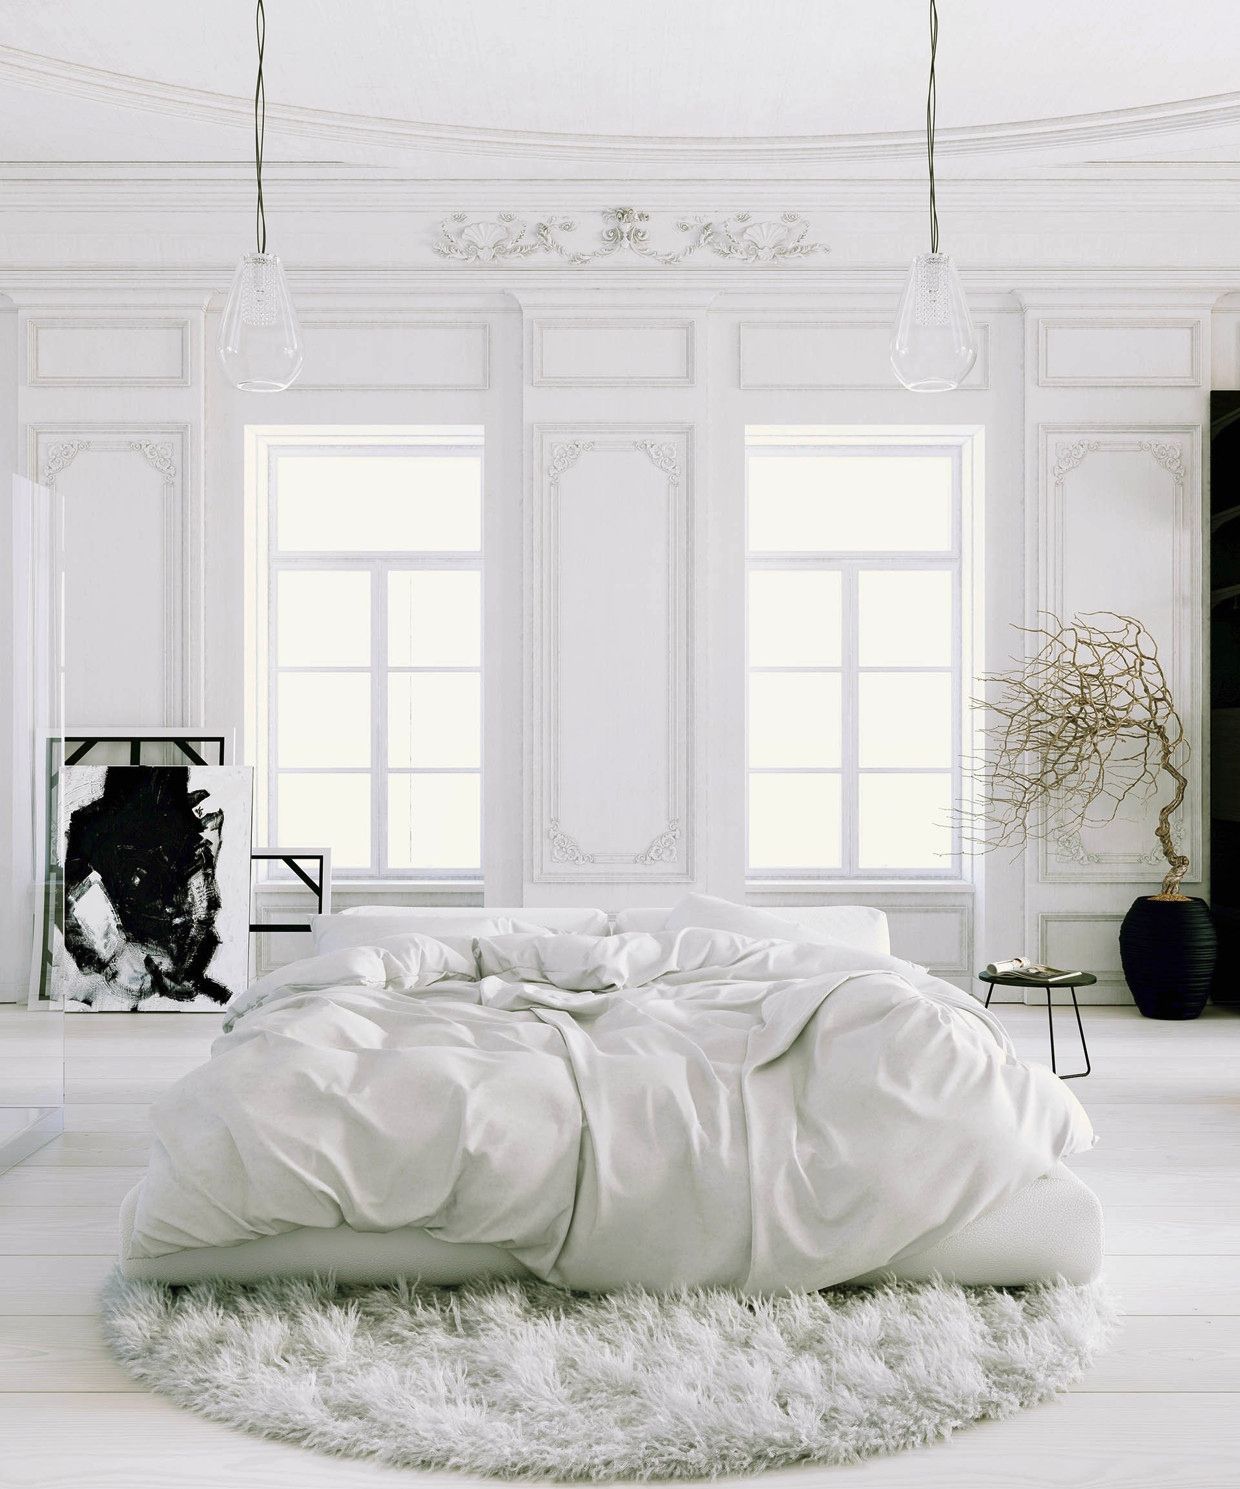 7 Tips for Creating the Perfect White Bedroom | Glitter, Inc.